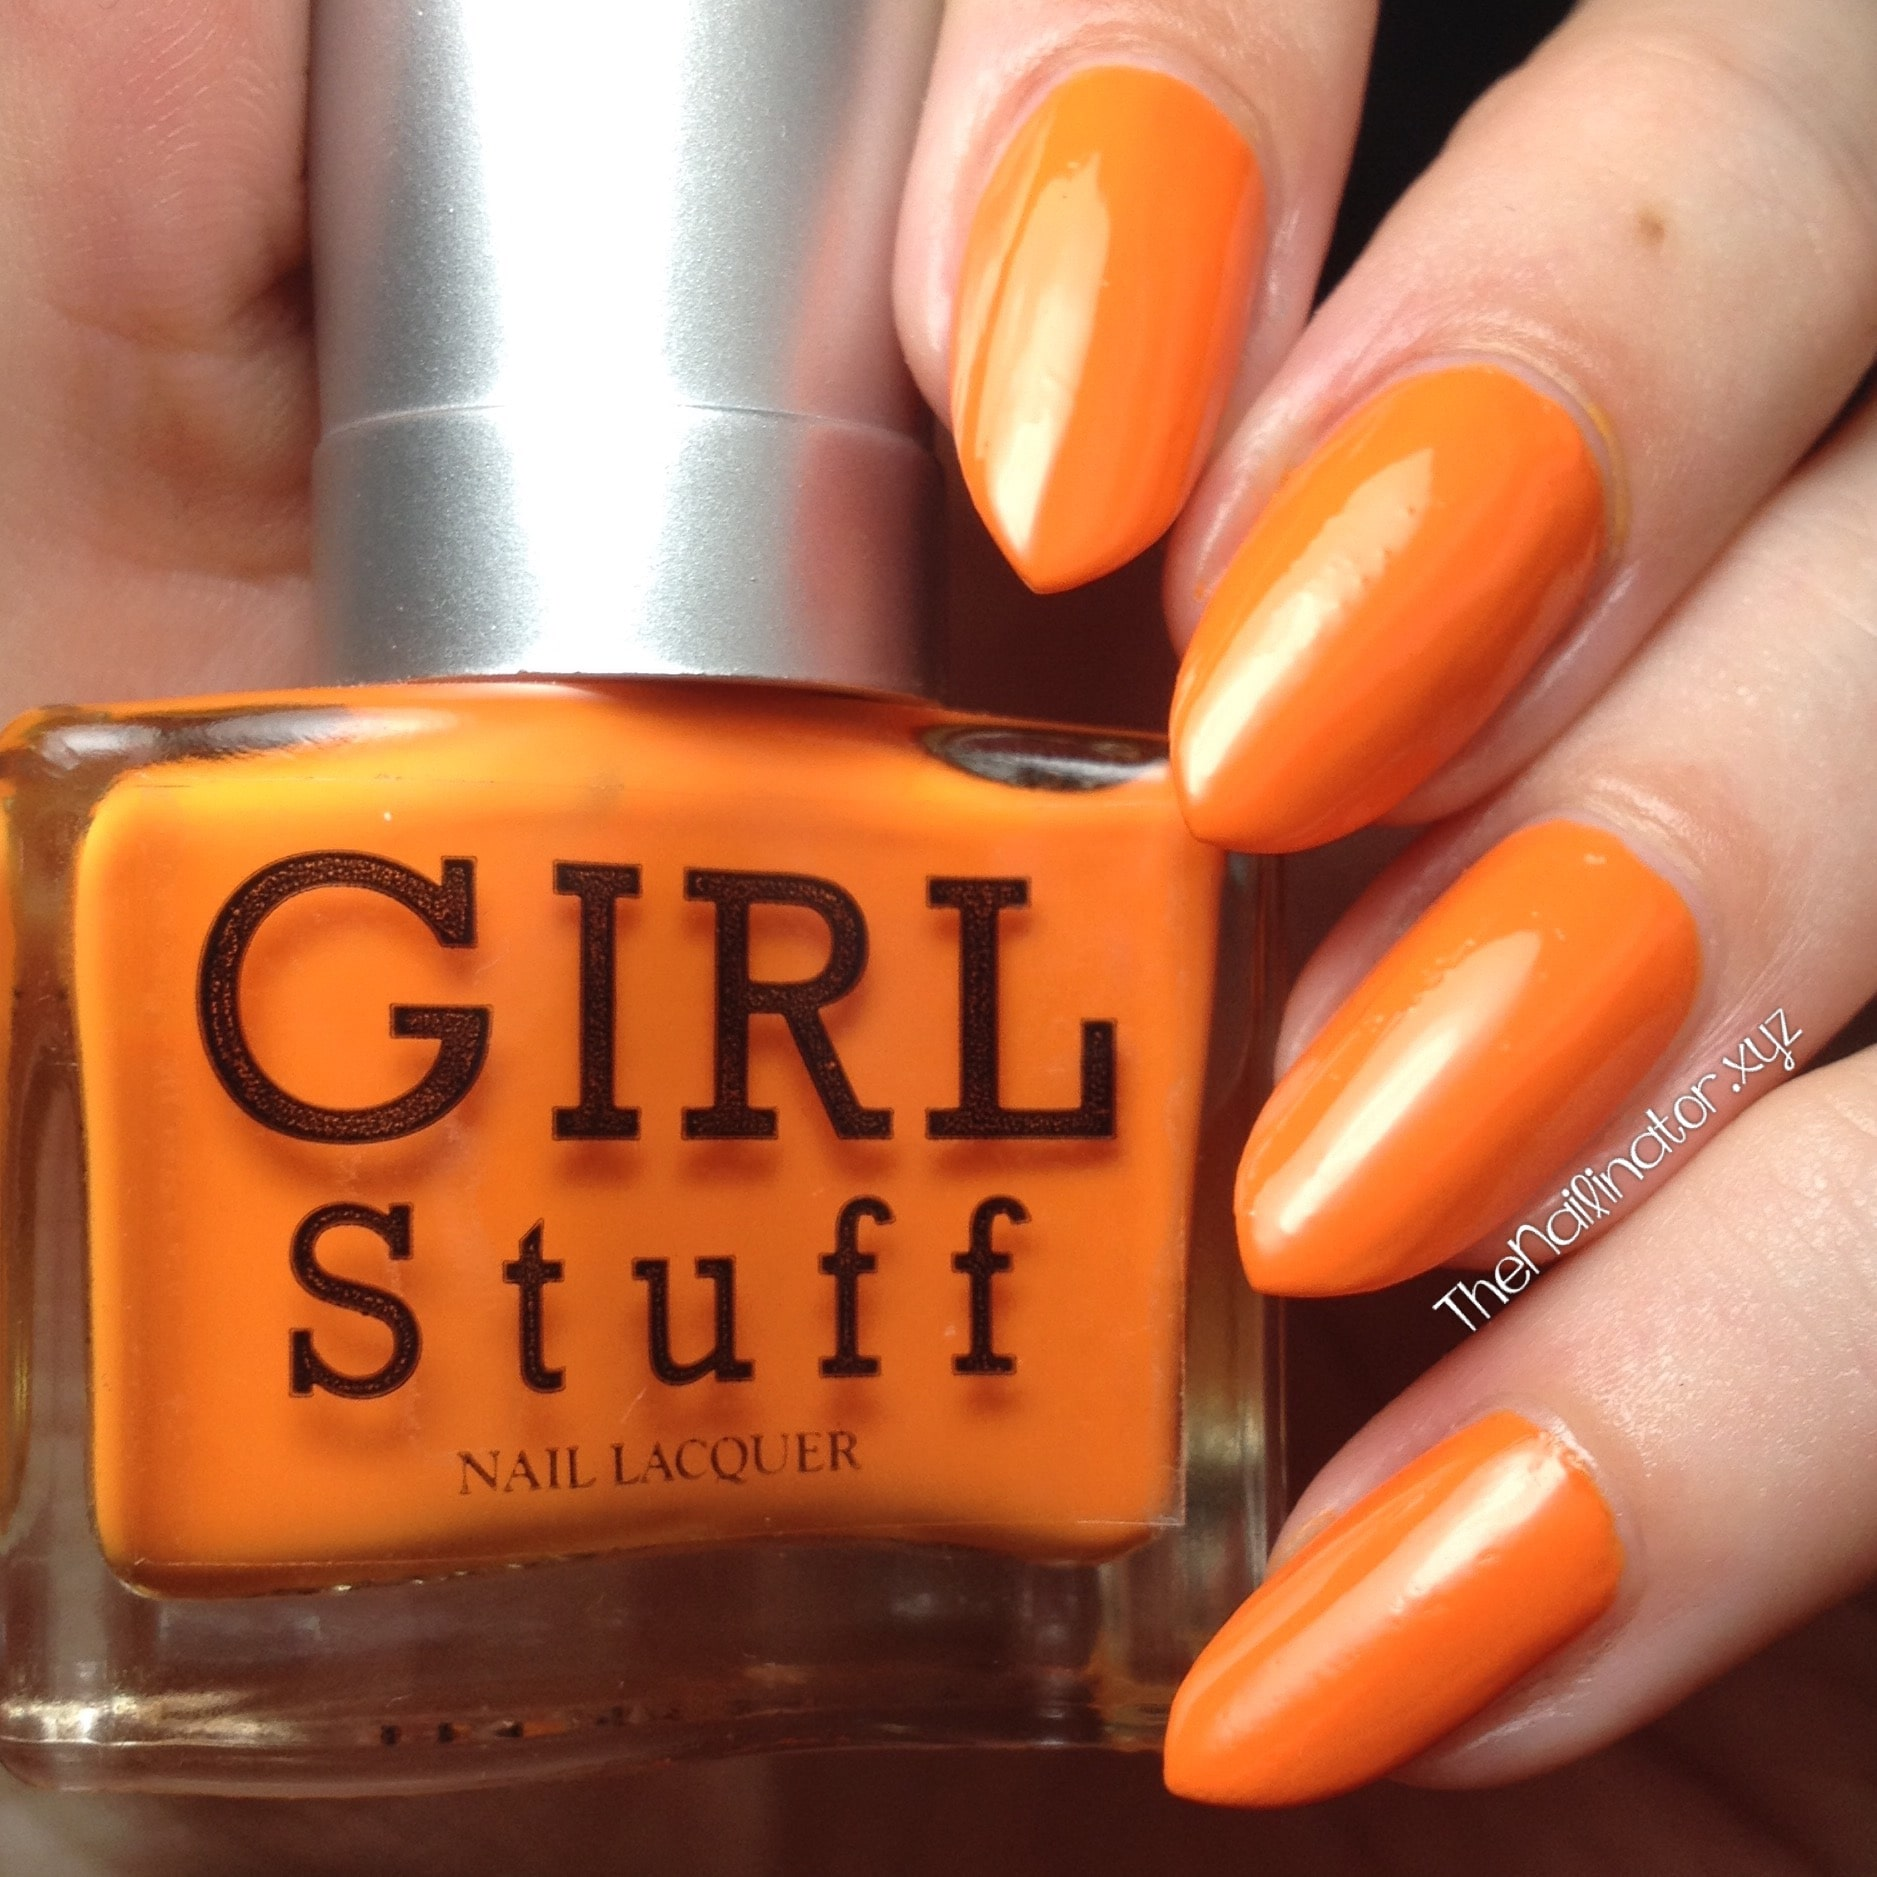 Girlstuff Rave Neon Collection Swatches and Review - Summer Rave Neon Collection